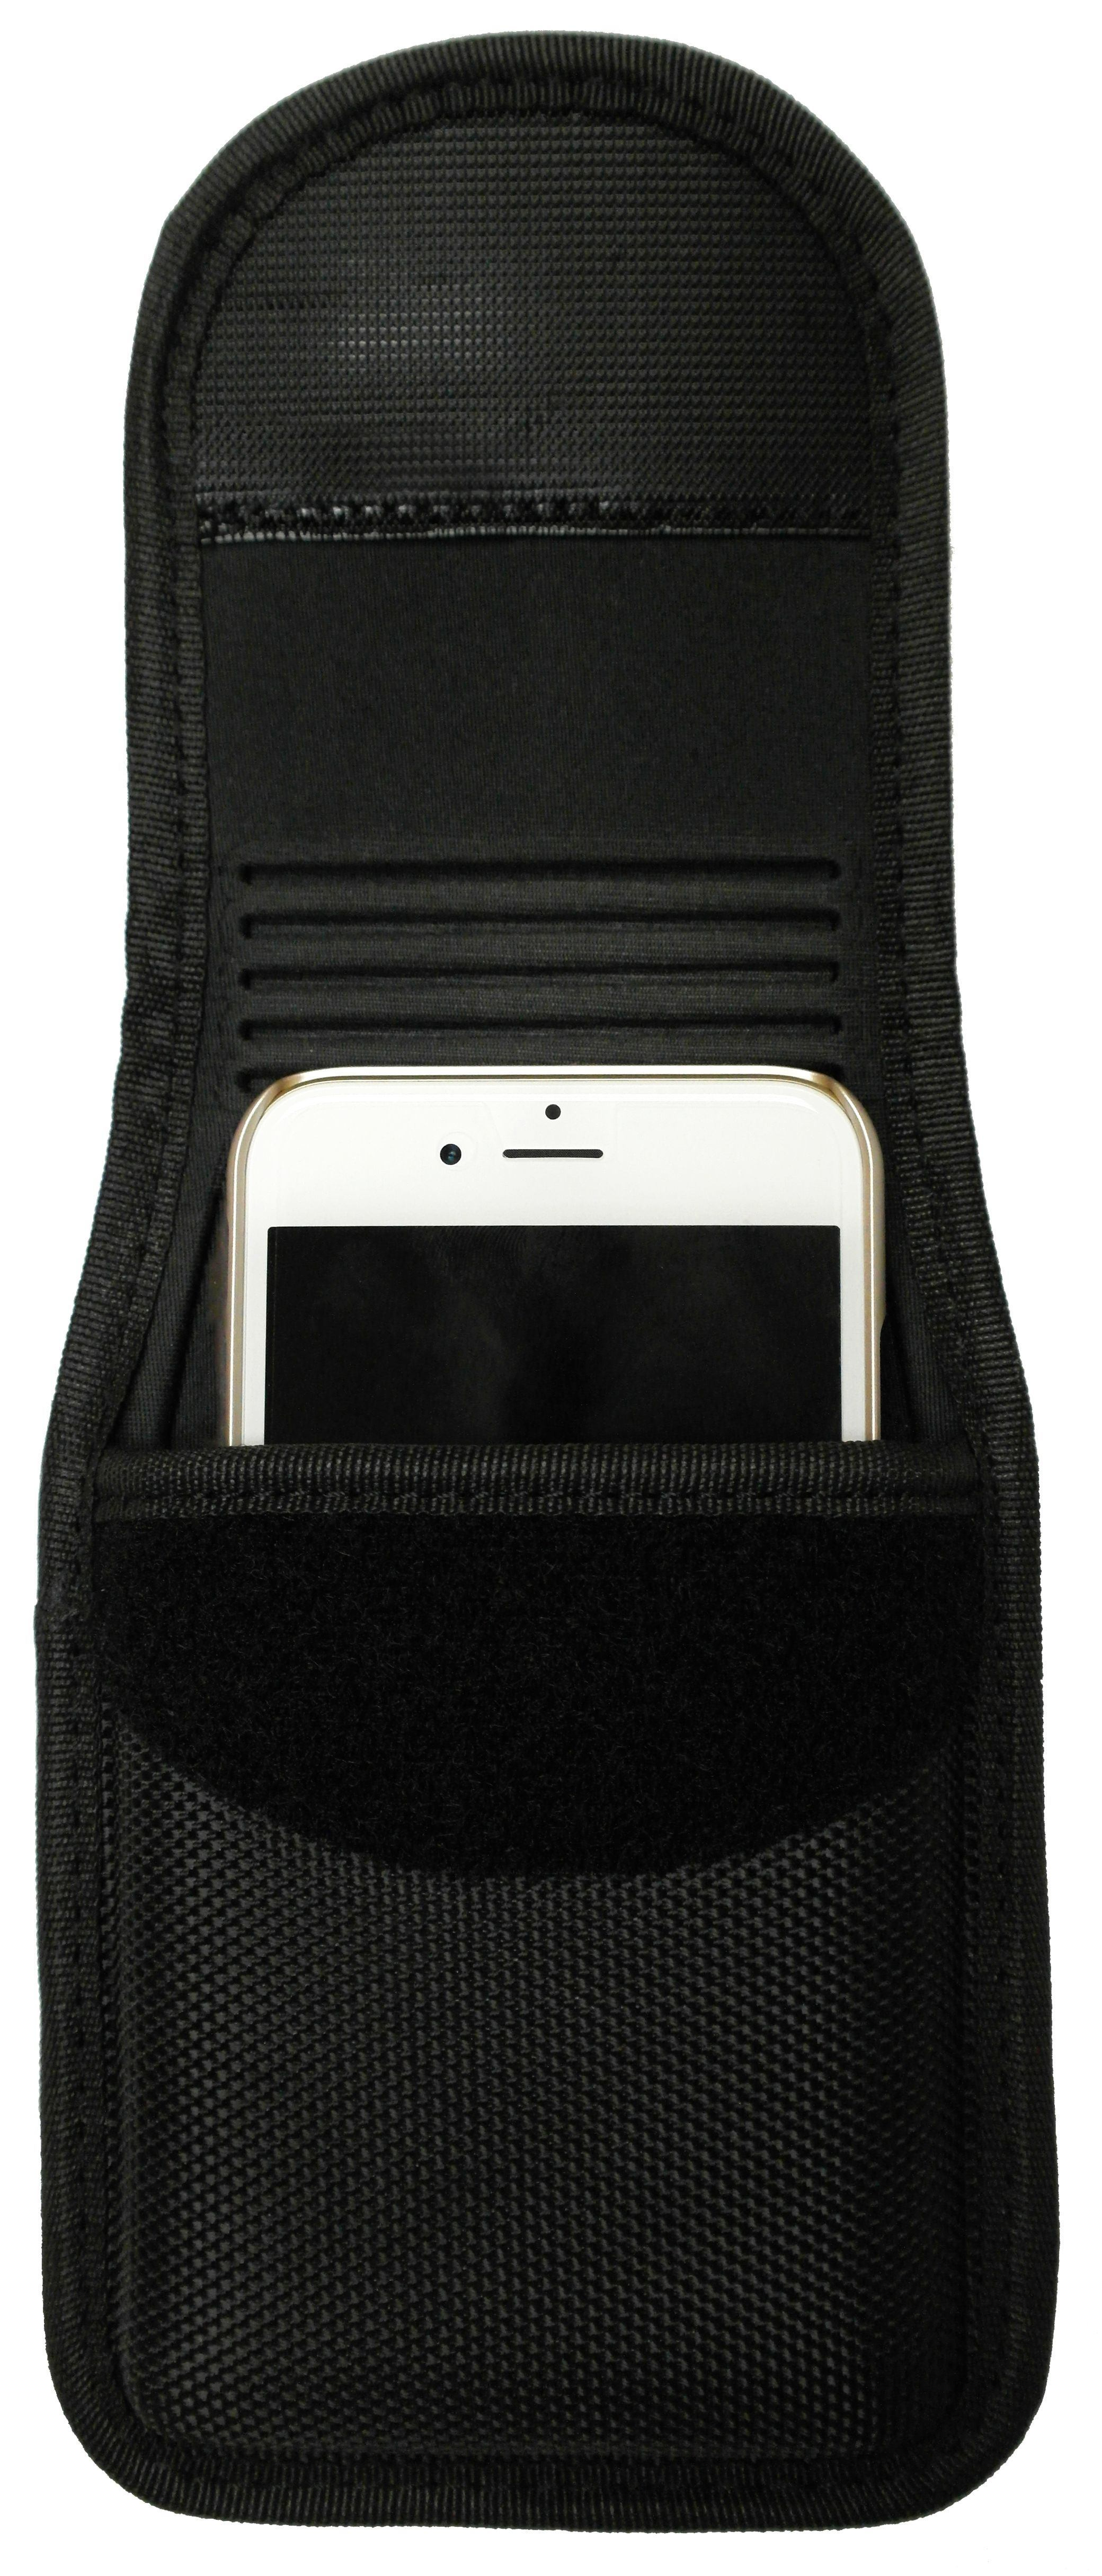 Smart Phone Case, 2XL, iPhone6 & more - Closed - Ballistic